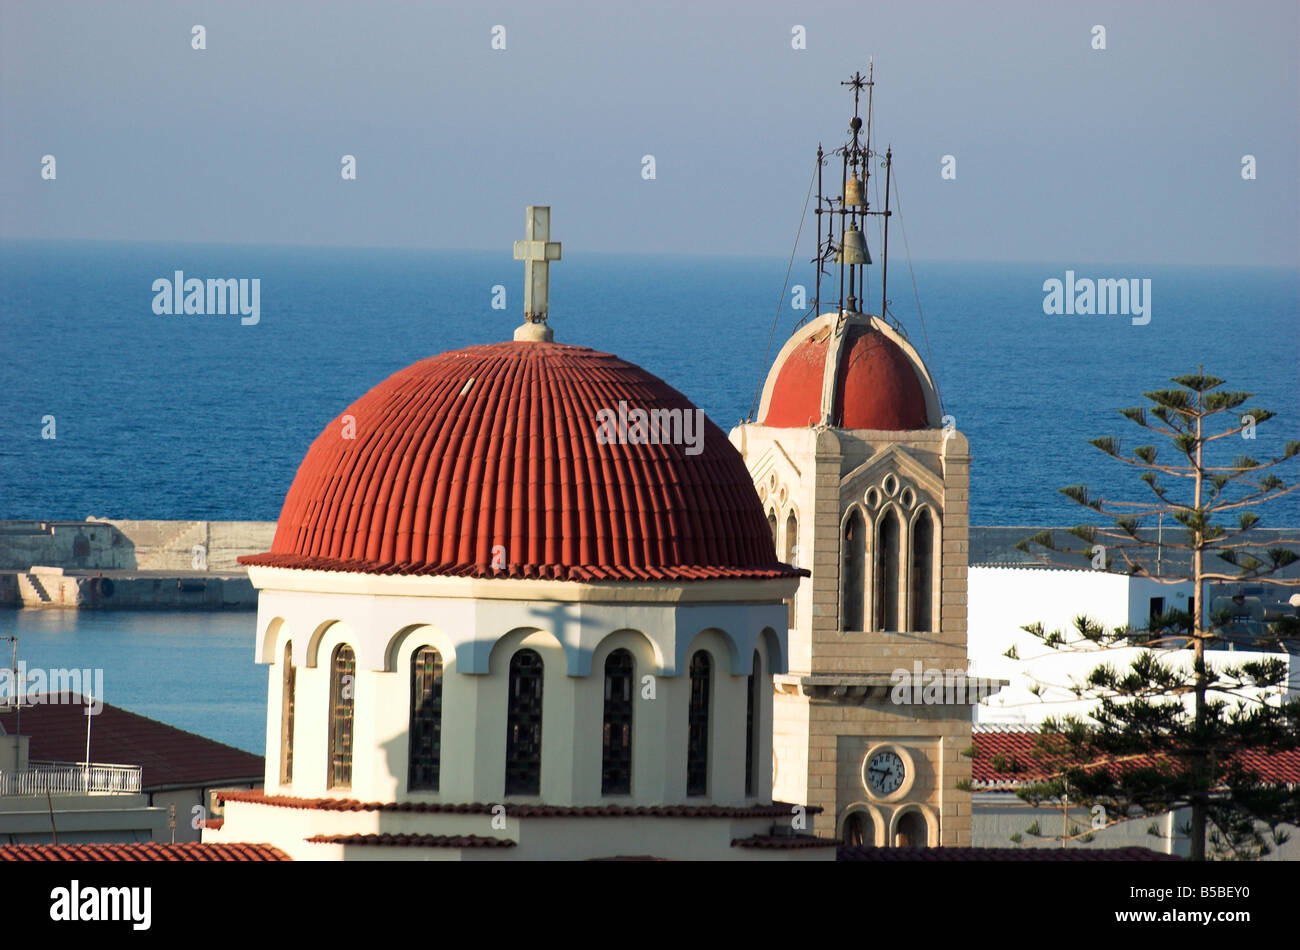 orthodox church rethymnon crete greece stockfotos. Black Bedroom Furniture Sets. Home Design Ideas